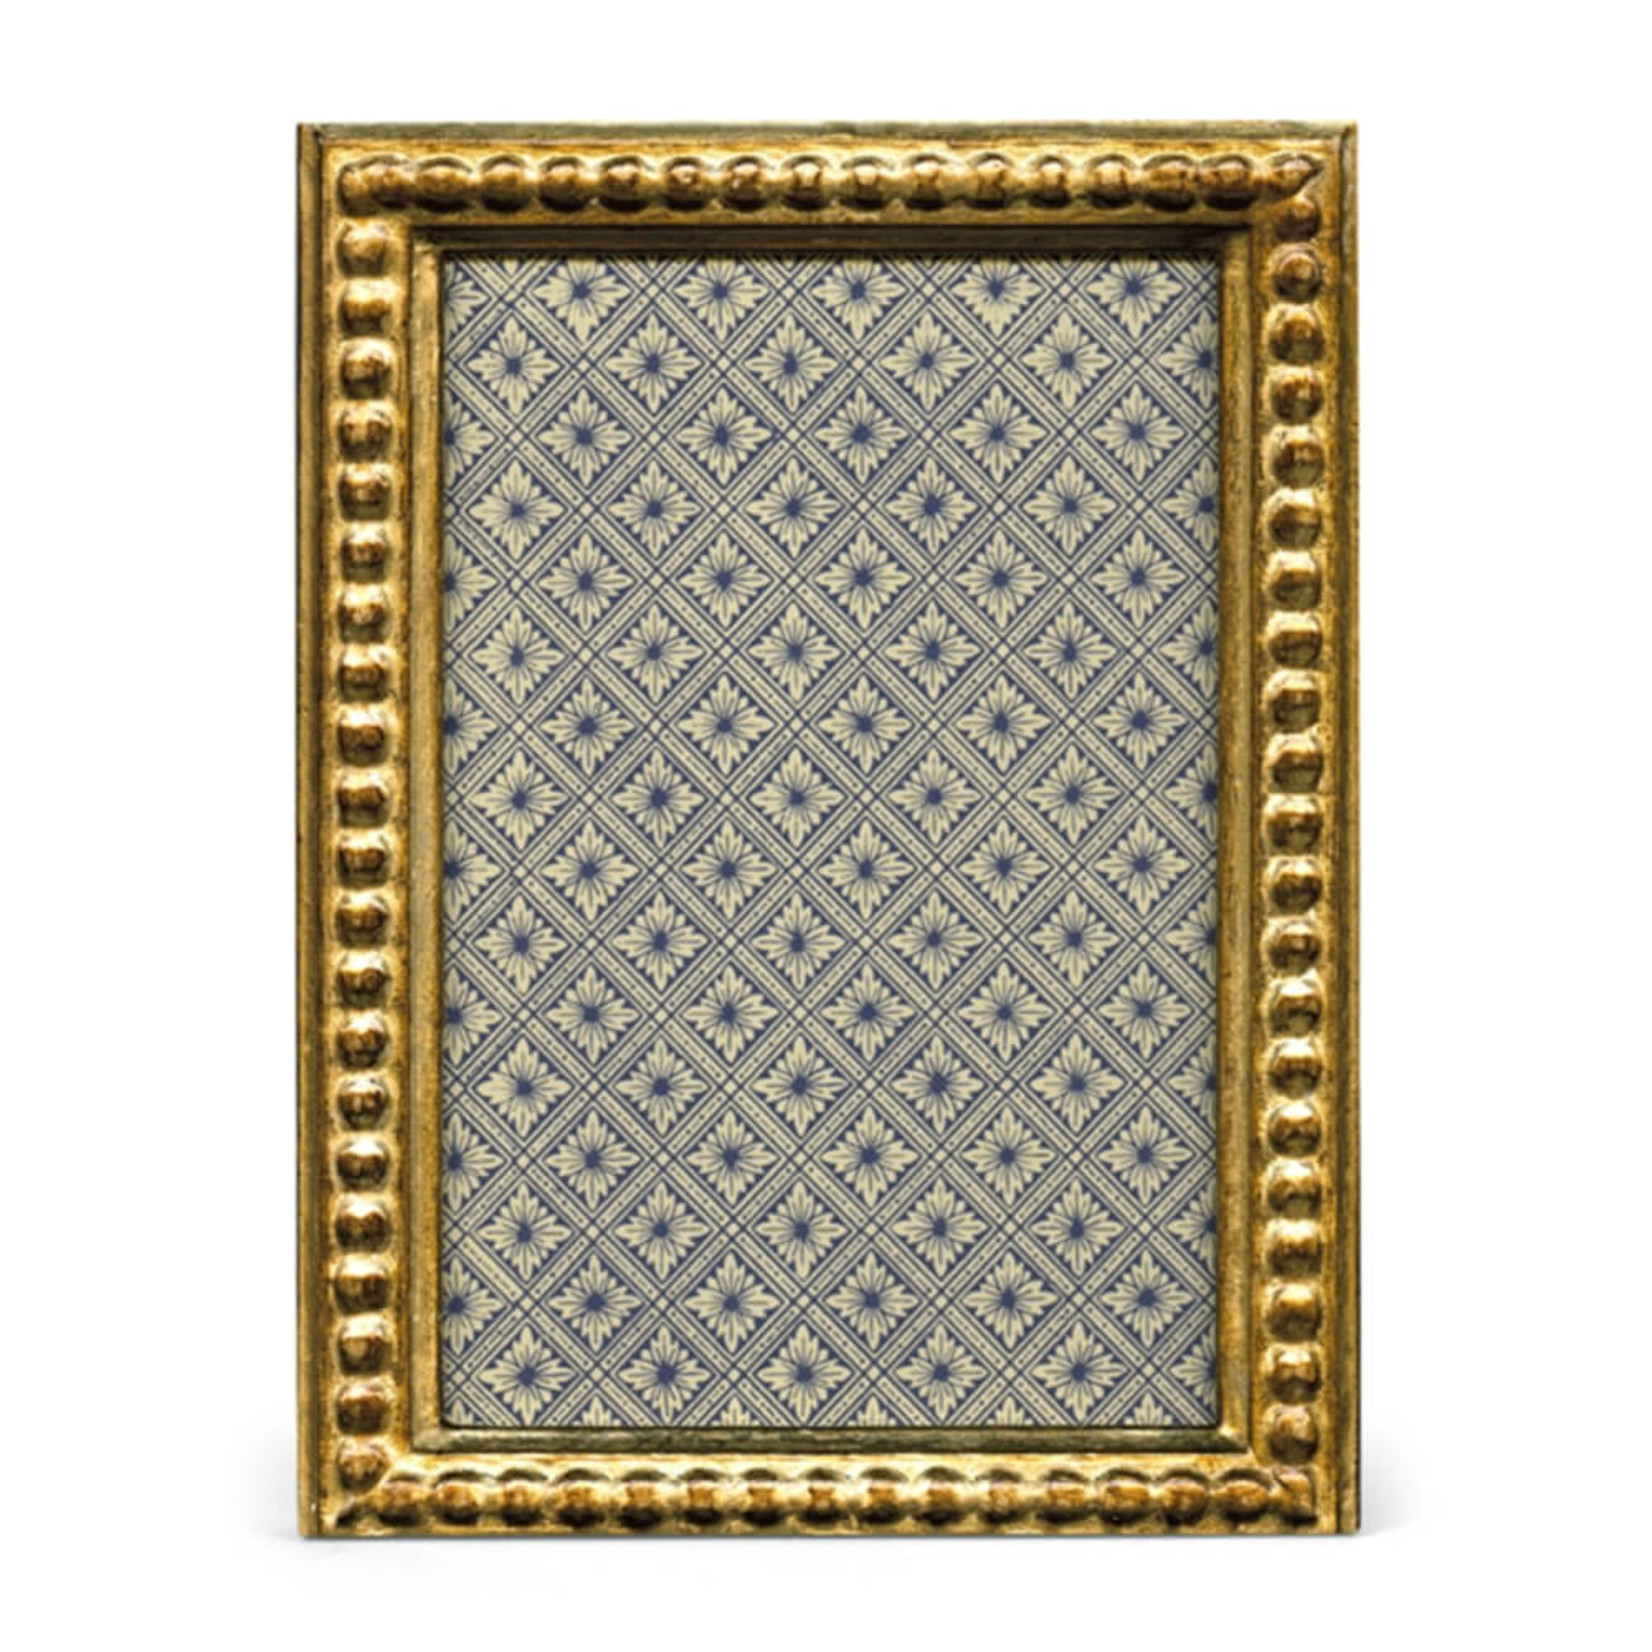 Cavallini & Co. Romano Gold Frame